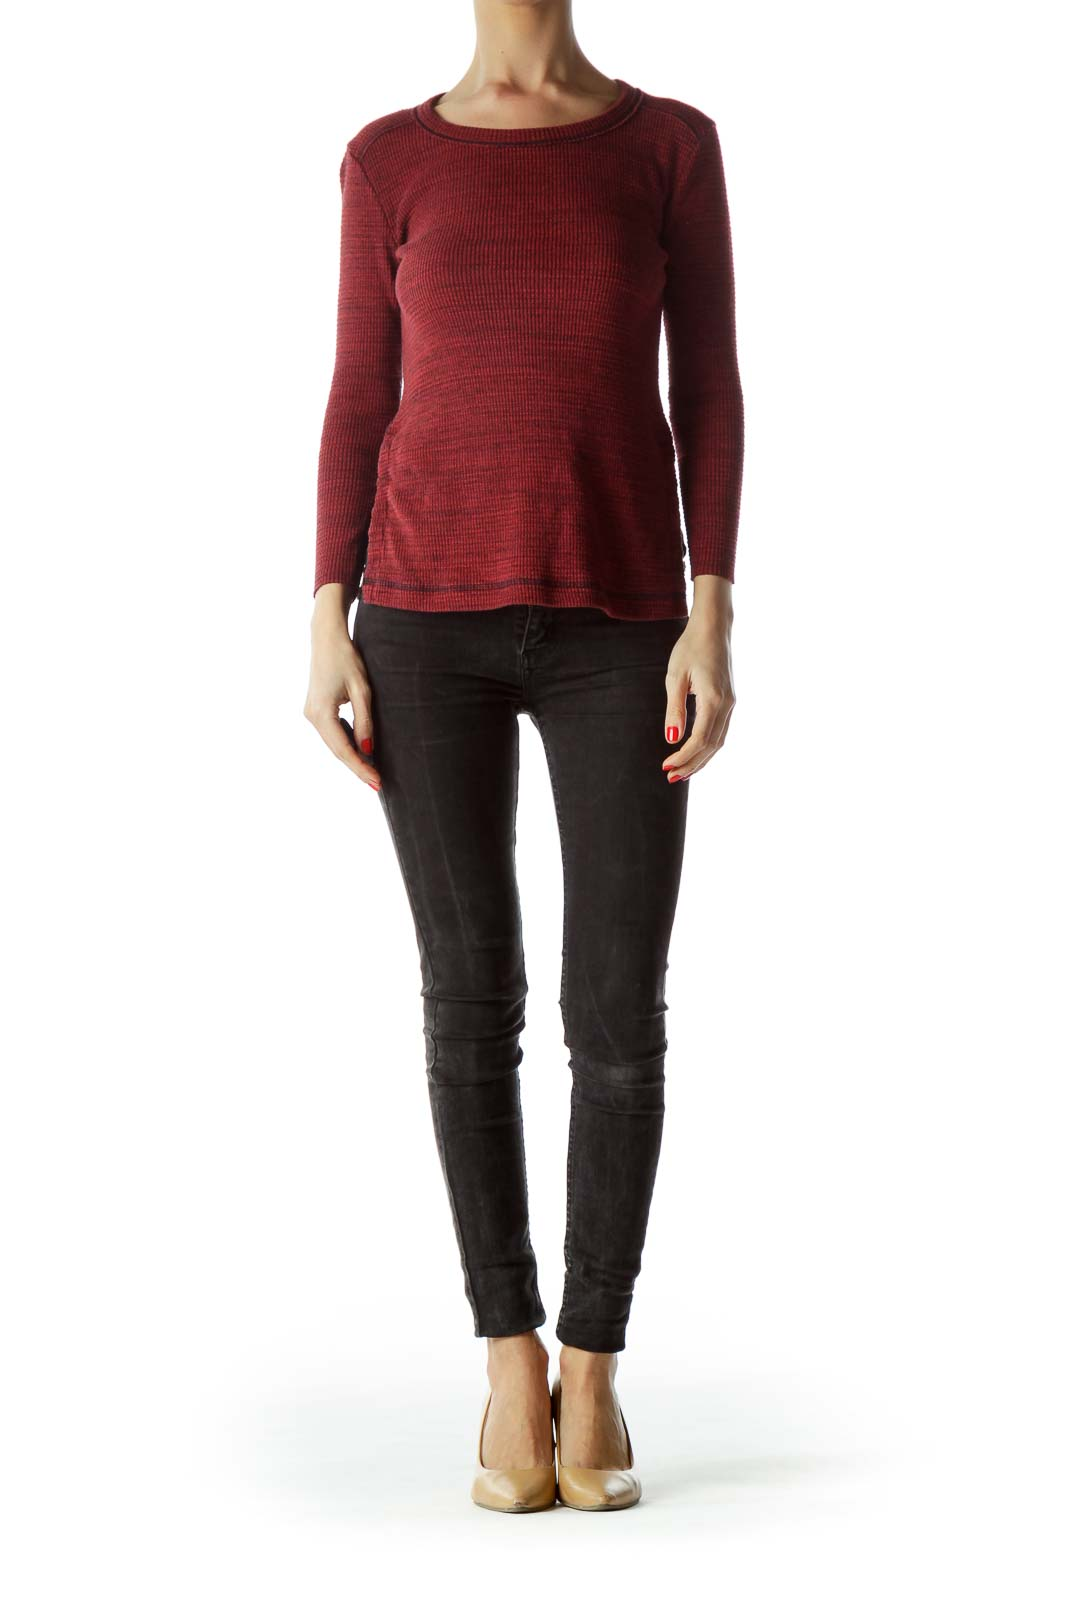 Red Sides Buttoned Long Sleeve Knit Top